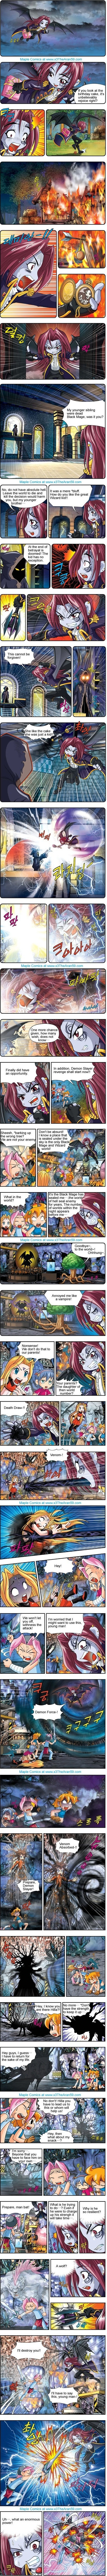 MapleStory Offline Comic RPG Volume 49 1-copy-22